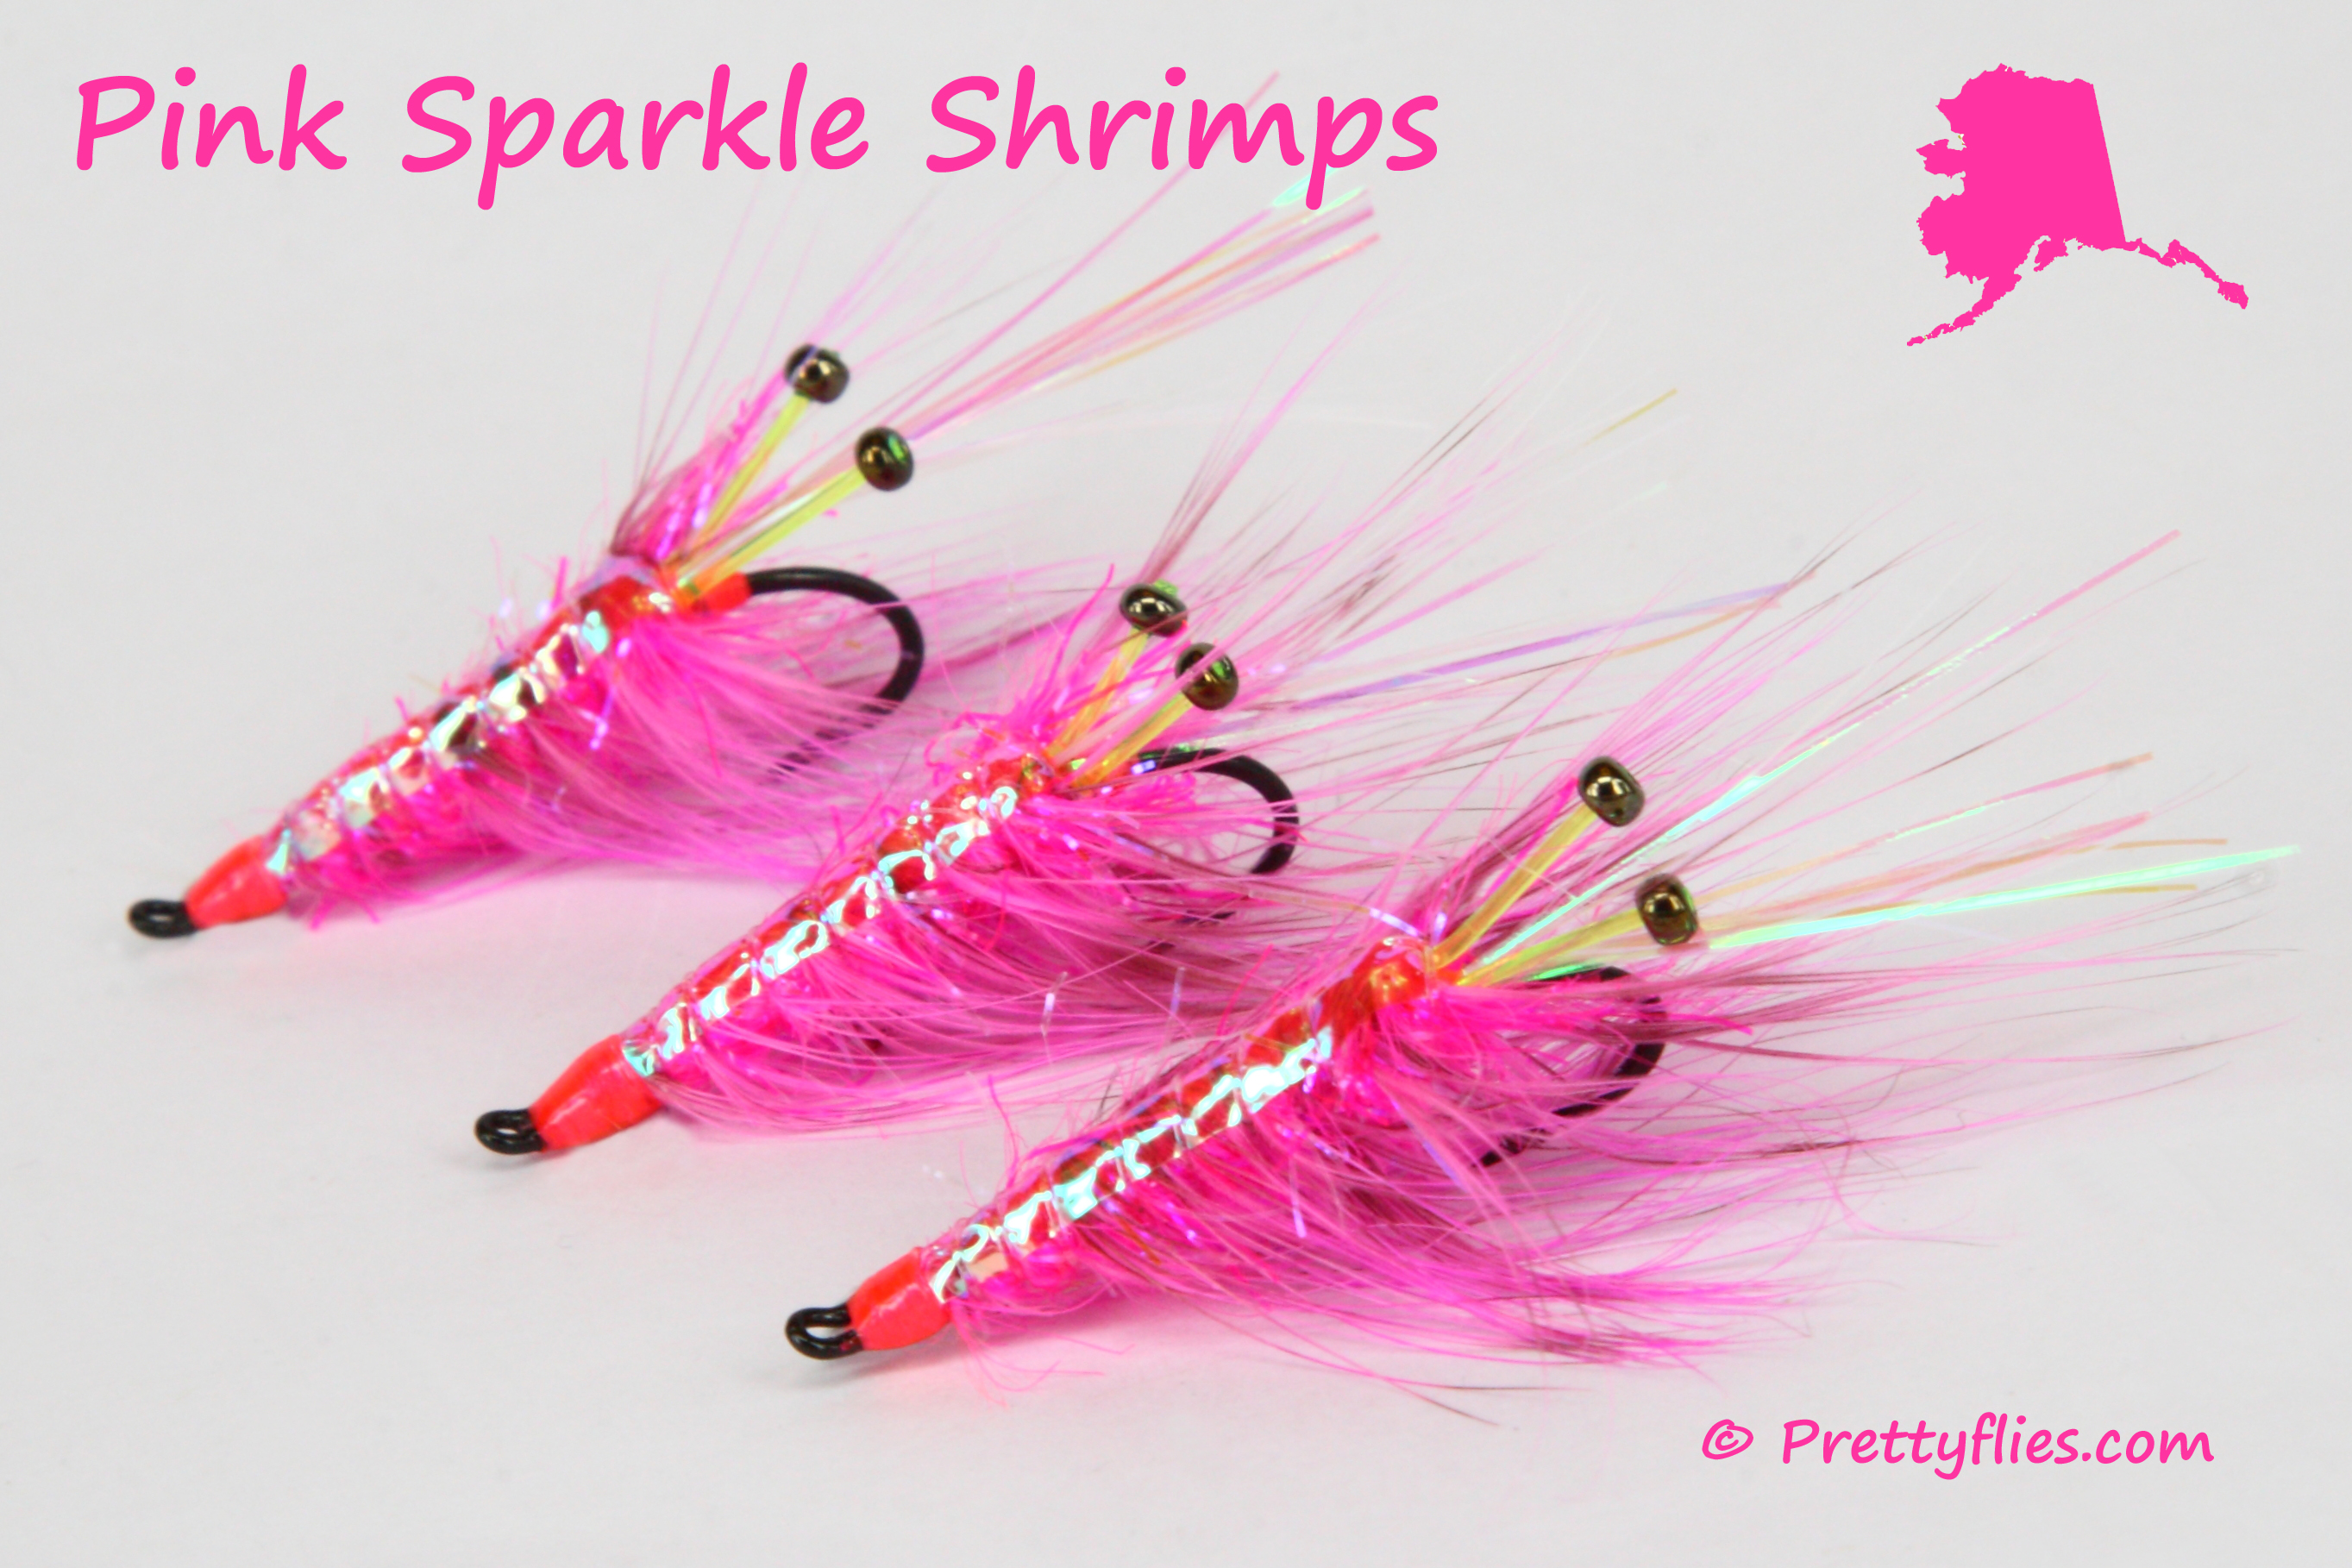 Pink Sparkle Shrimps.jpg